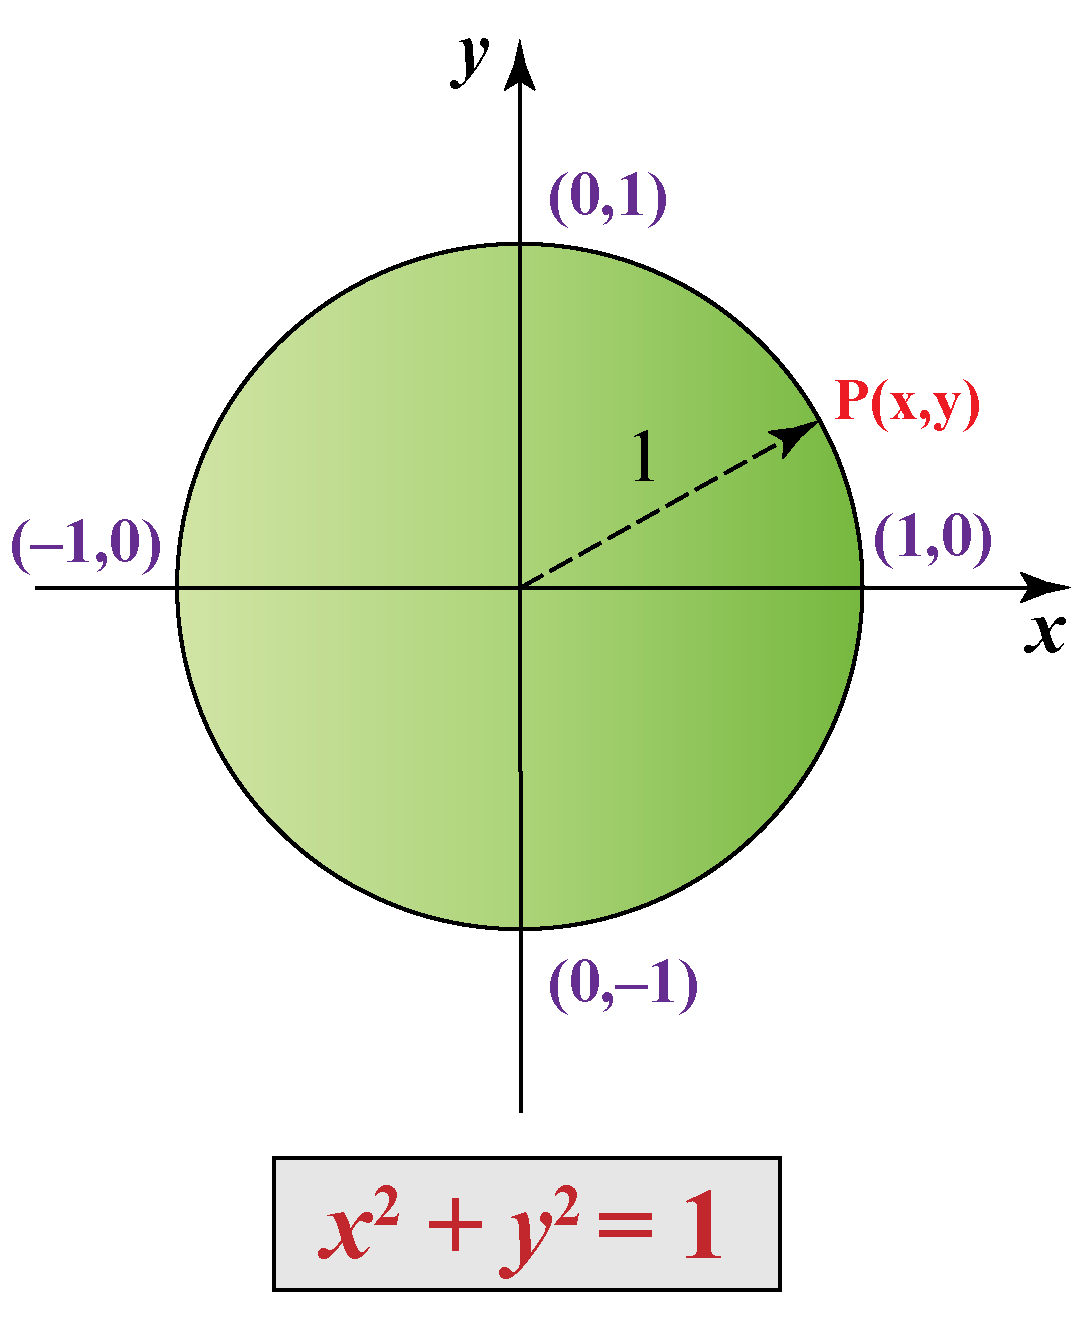 Unit circle math - the centre lies at (0,0) and the radius is 1 unit.